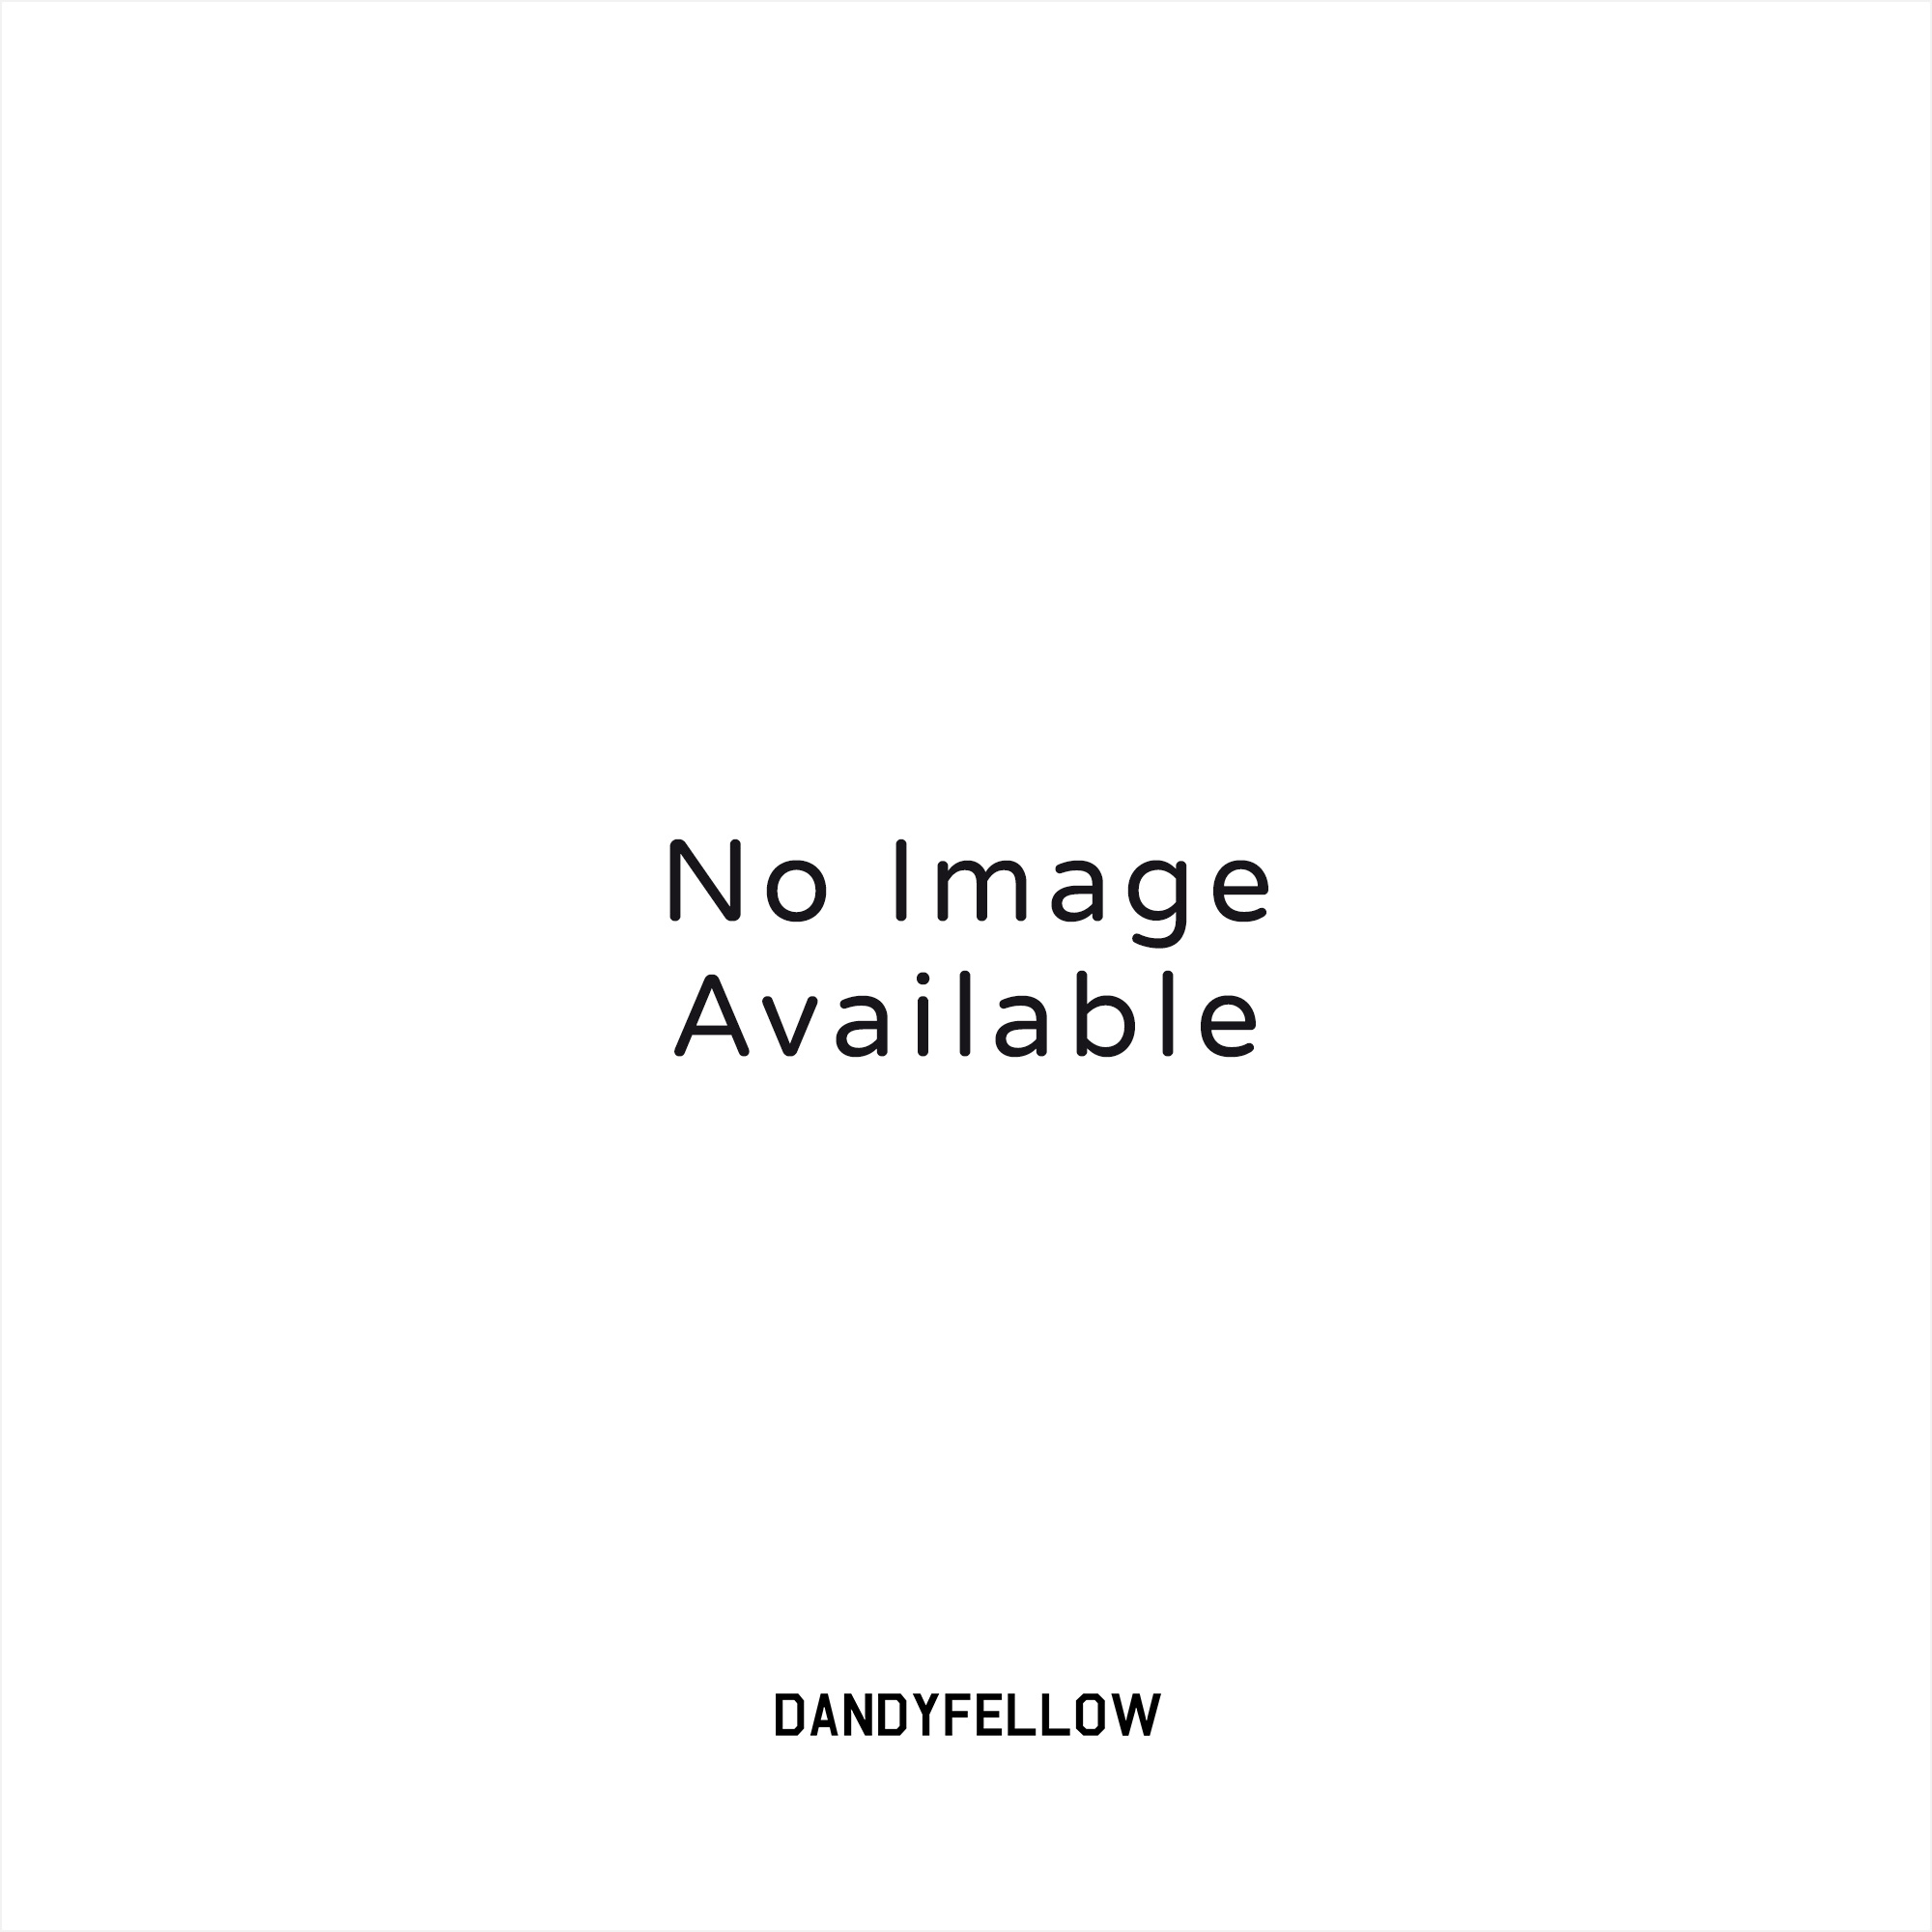 cb95a931a63 Nike Air Max 95 PRM (Black   White) at Dandy Fellow